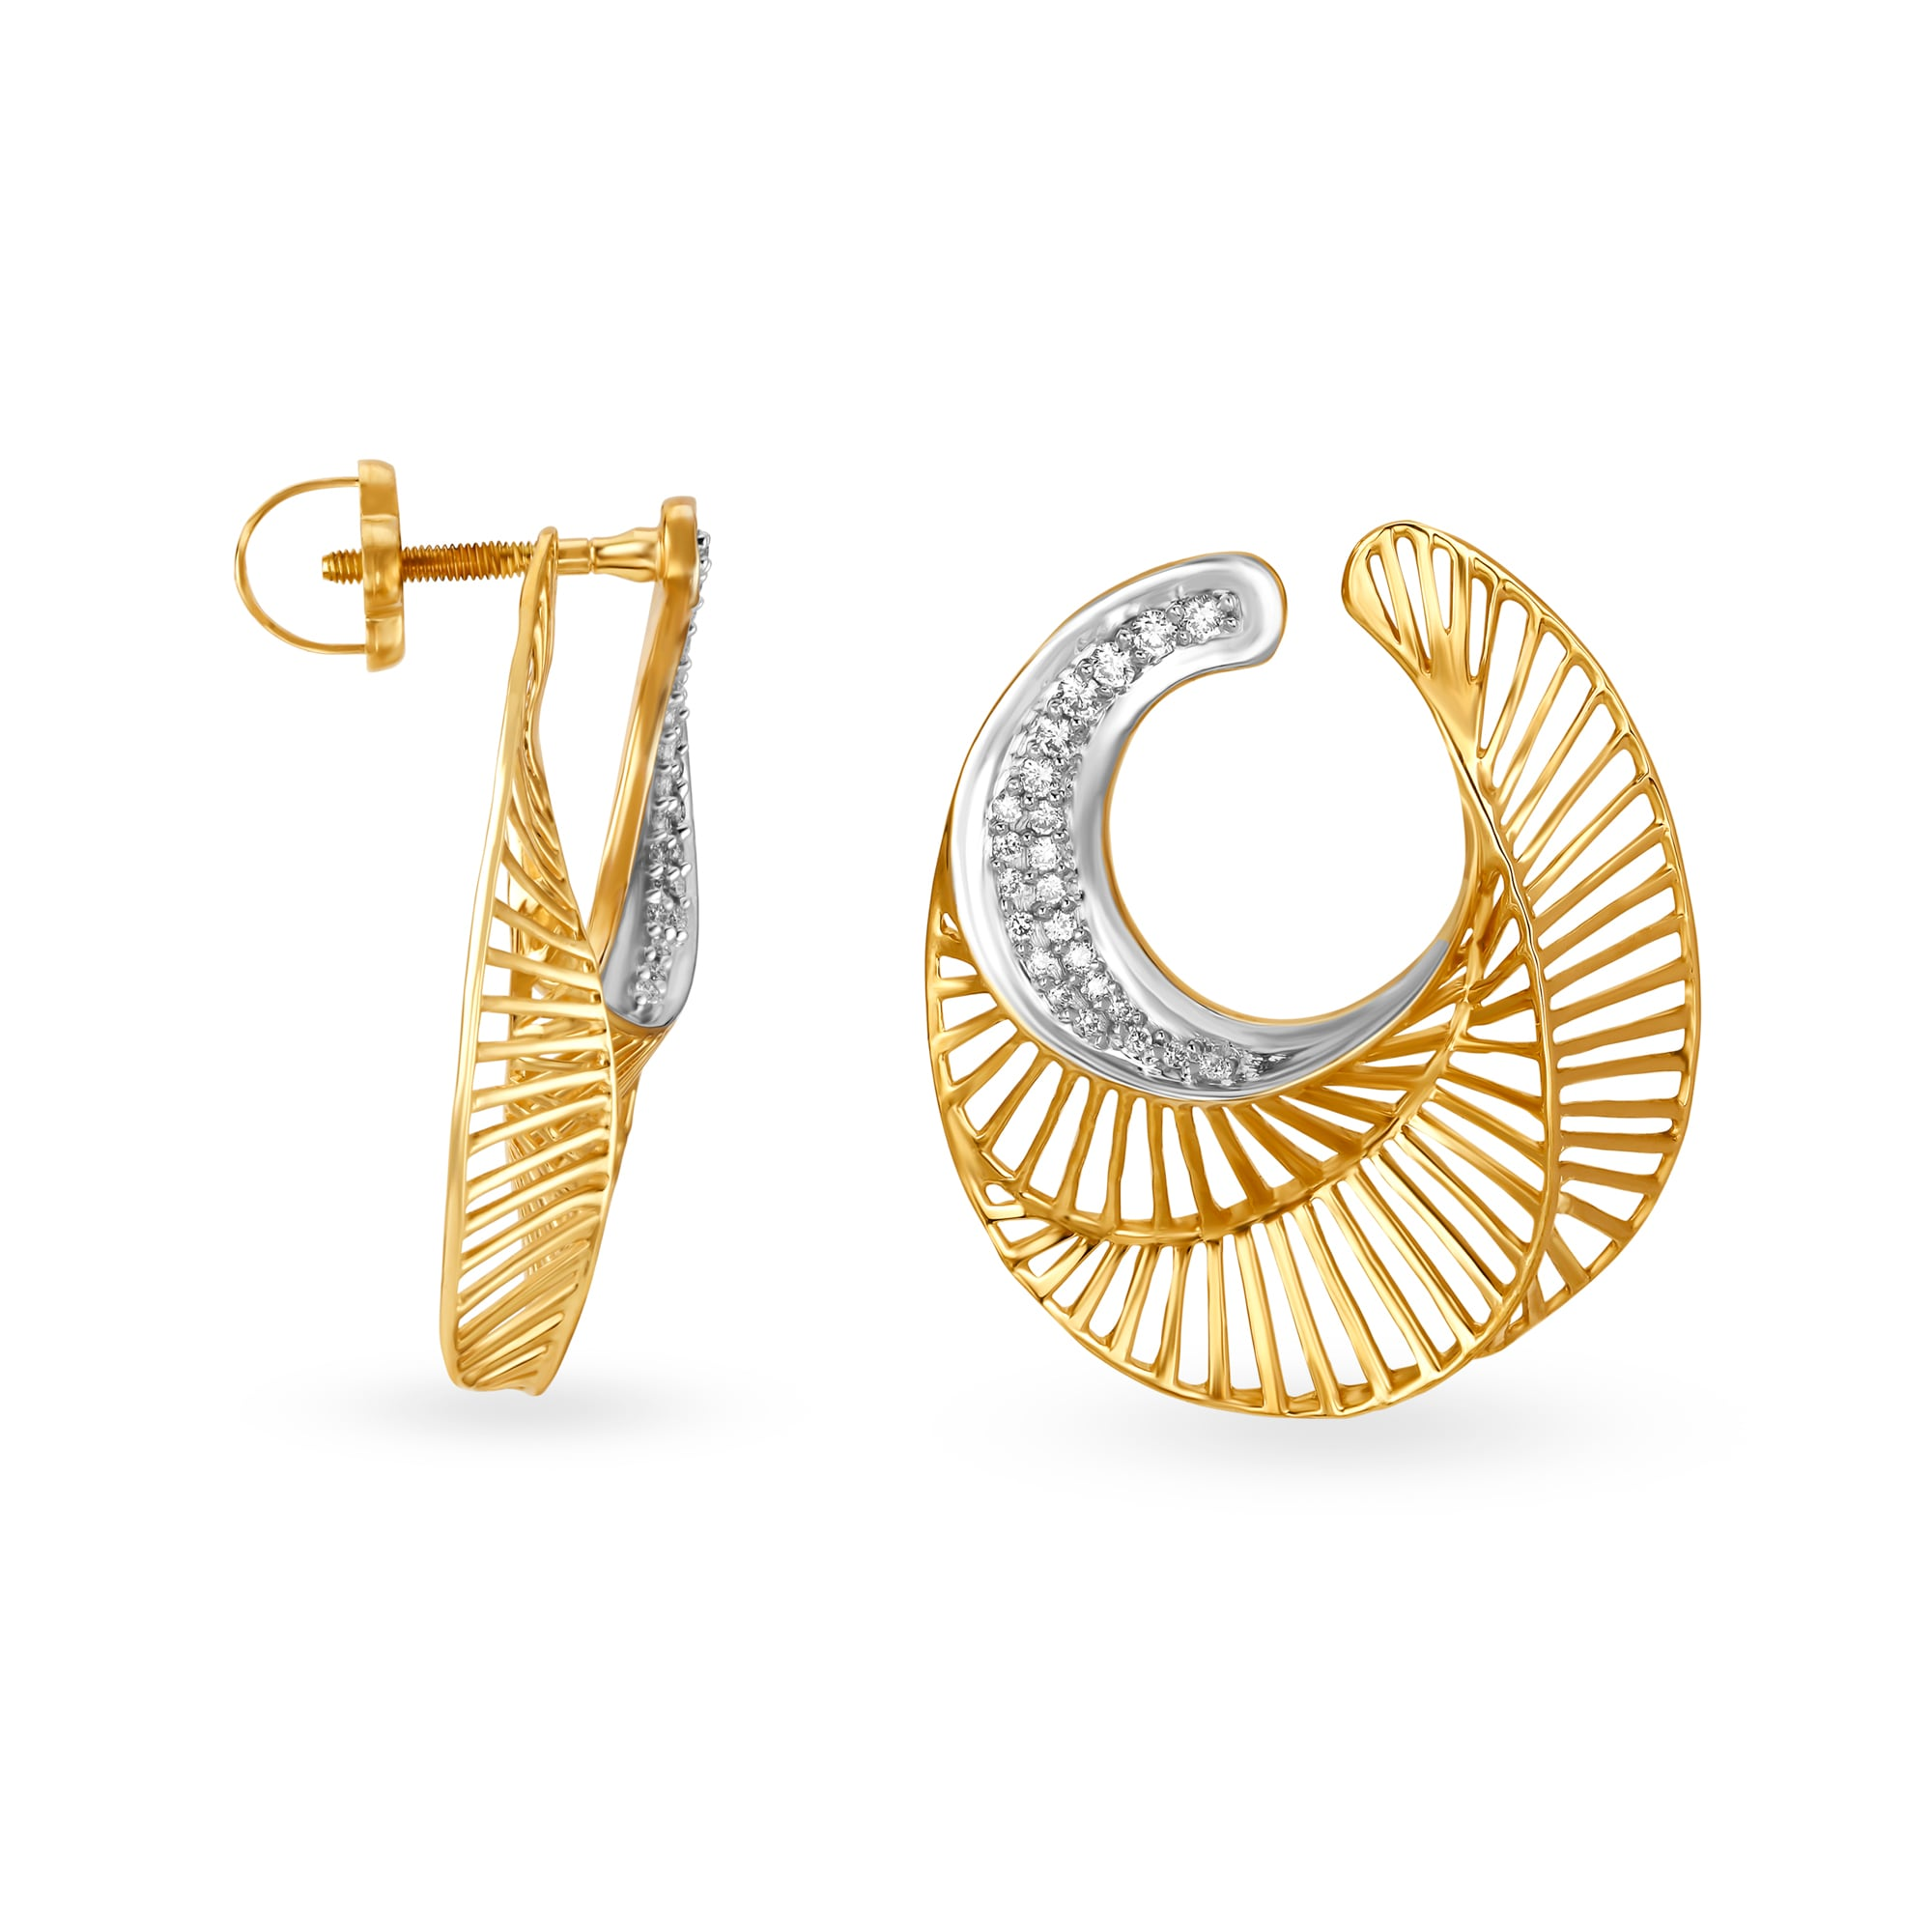 cd068ae460b7a Mia by Tanishq 14KT Yellow Gold Diamond Hoop Earrings with Openwork ...